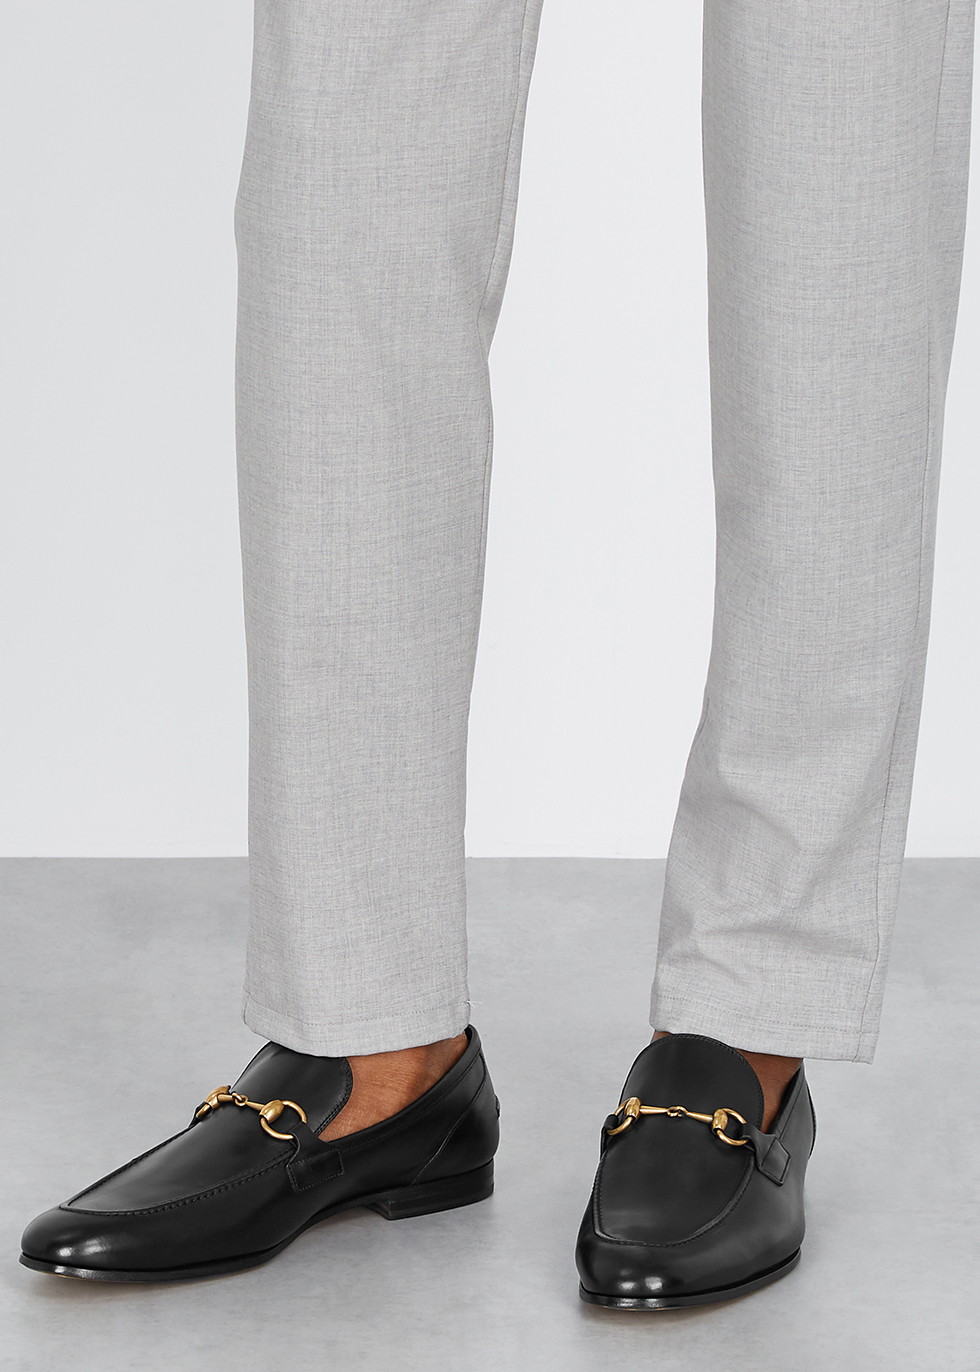 Gucci Jordaan black leather loafers